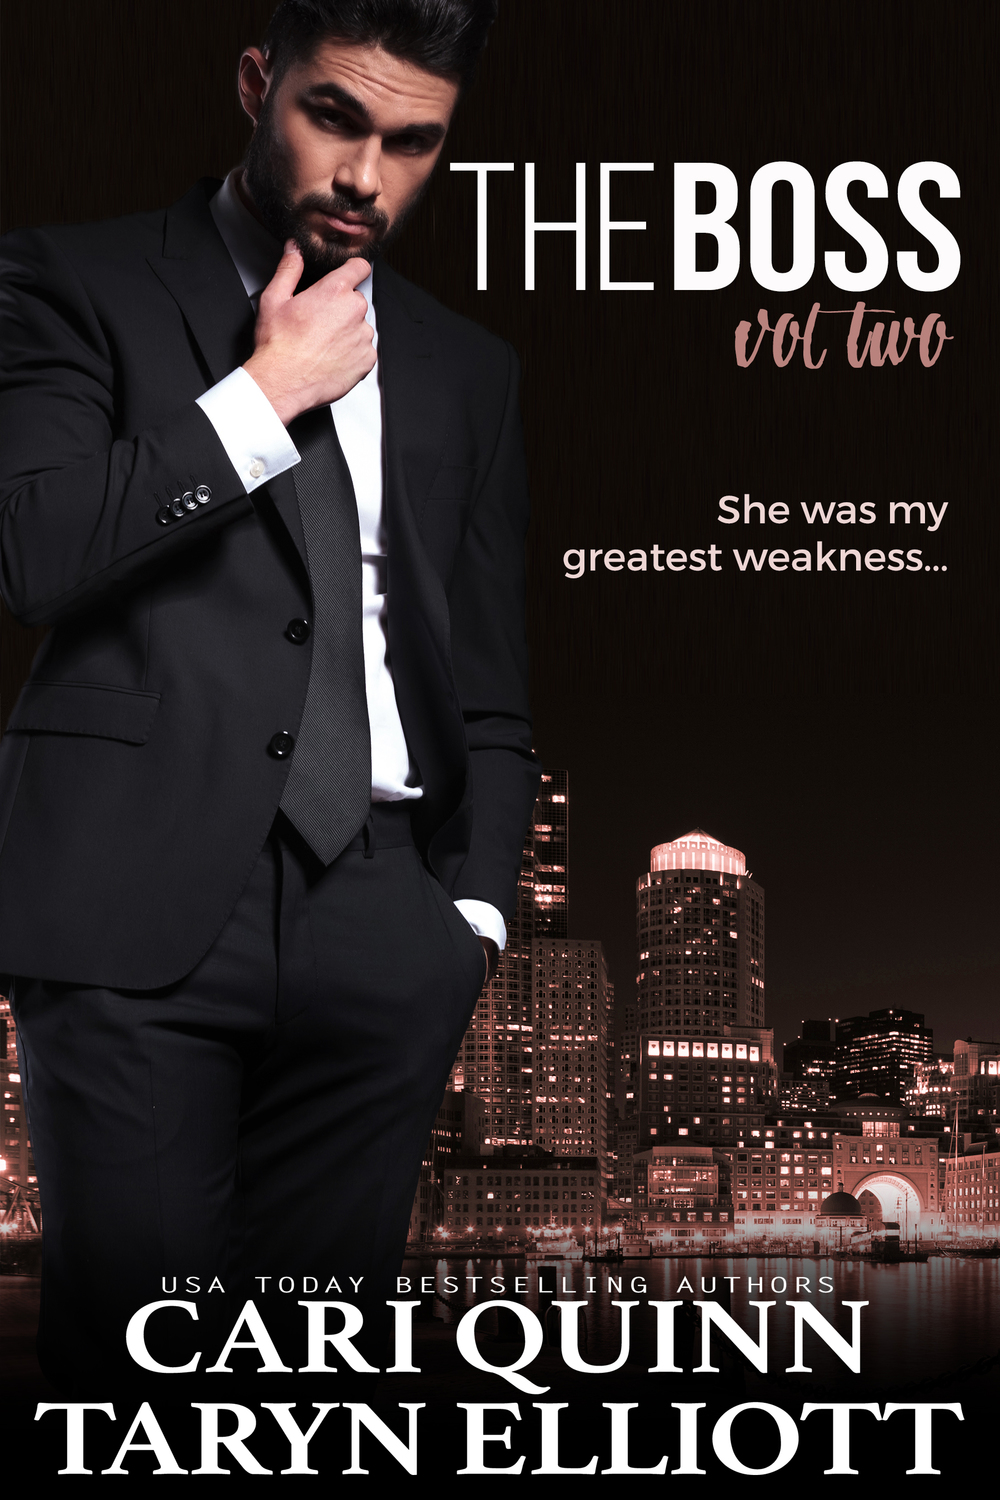 Taryn-Elliott-The-Boss-Vol.-2:-Hot-Billionaire-Romance-Serials-2.jpg